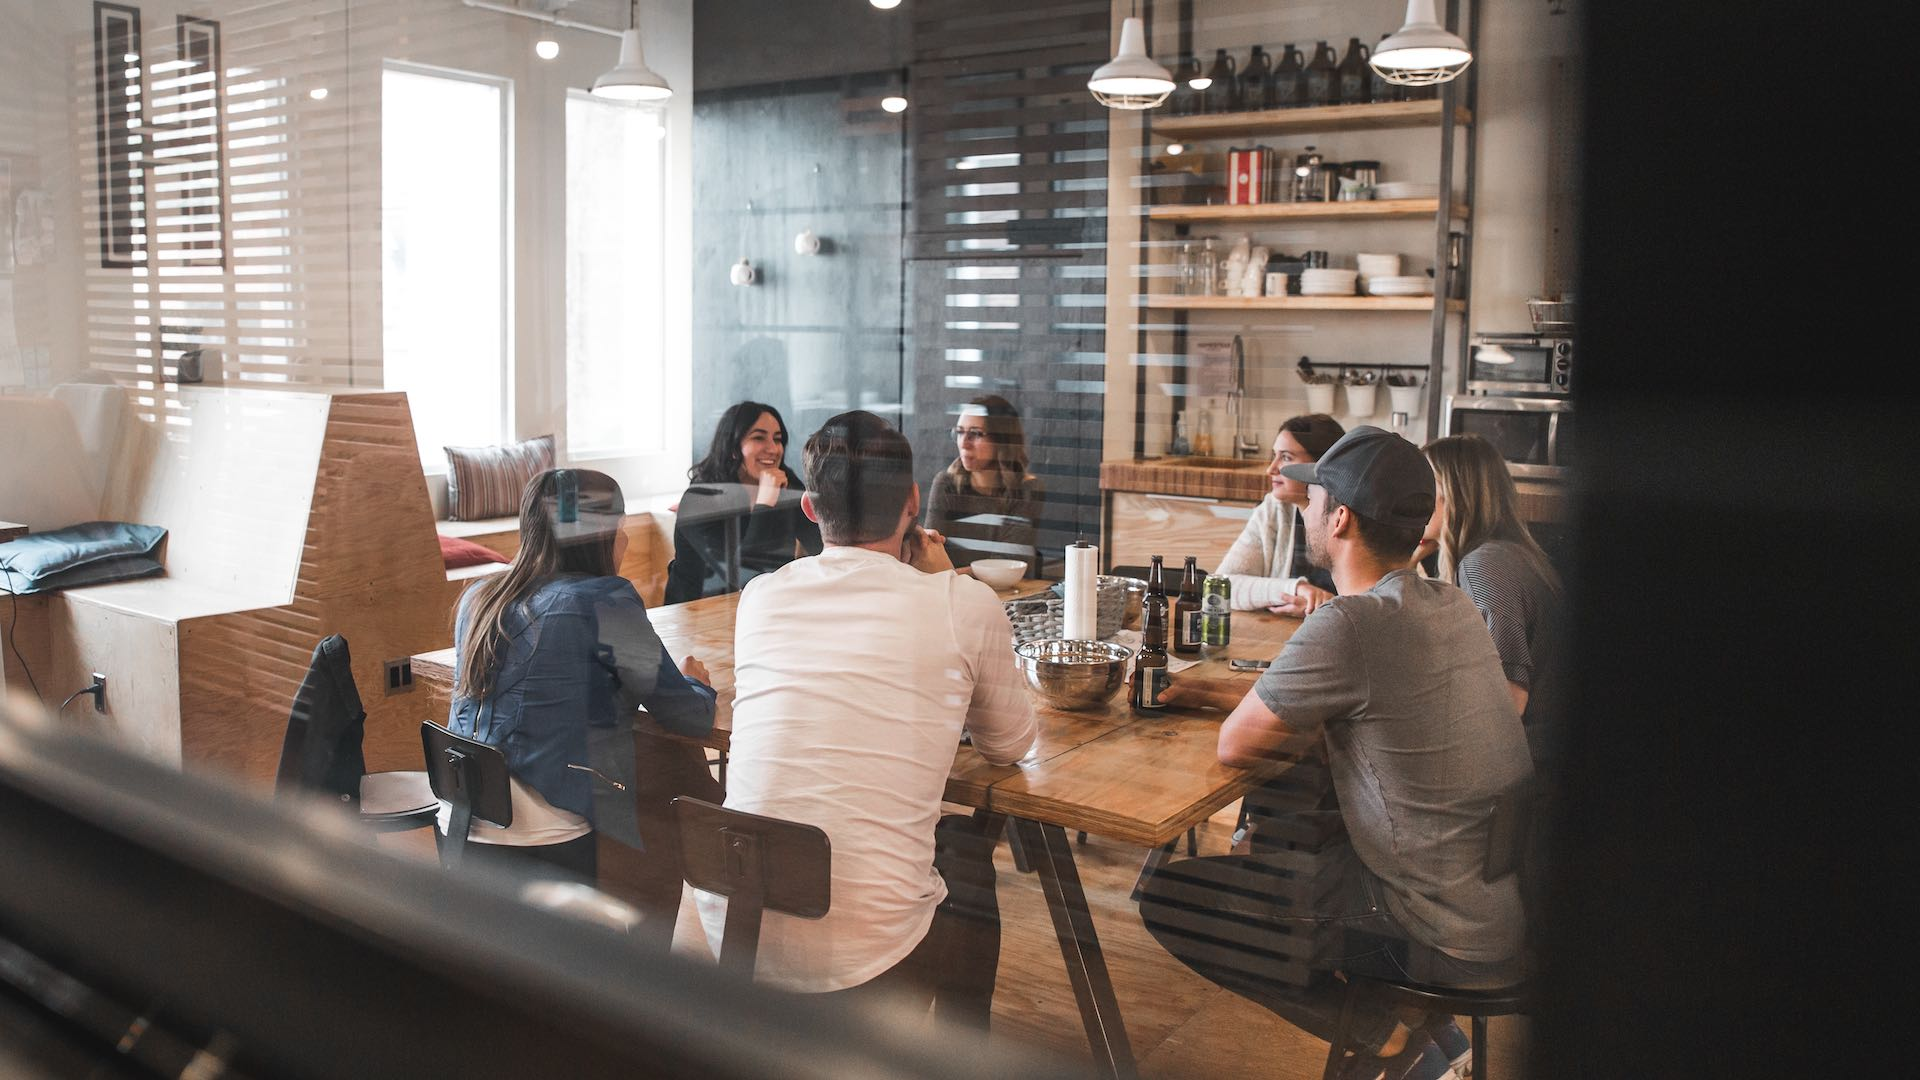 A very relaxed office meeting conducted in a kitchen / eating area. All attendees are sitting around a table, some with drinks, discussing strategy. It has the appearance of being an amazing place to work.